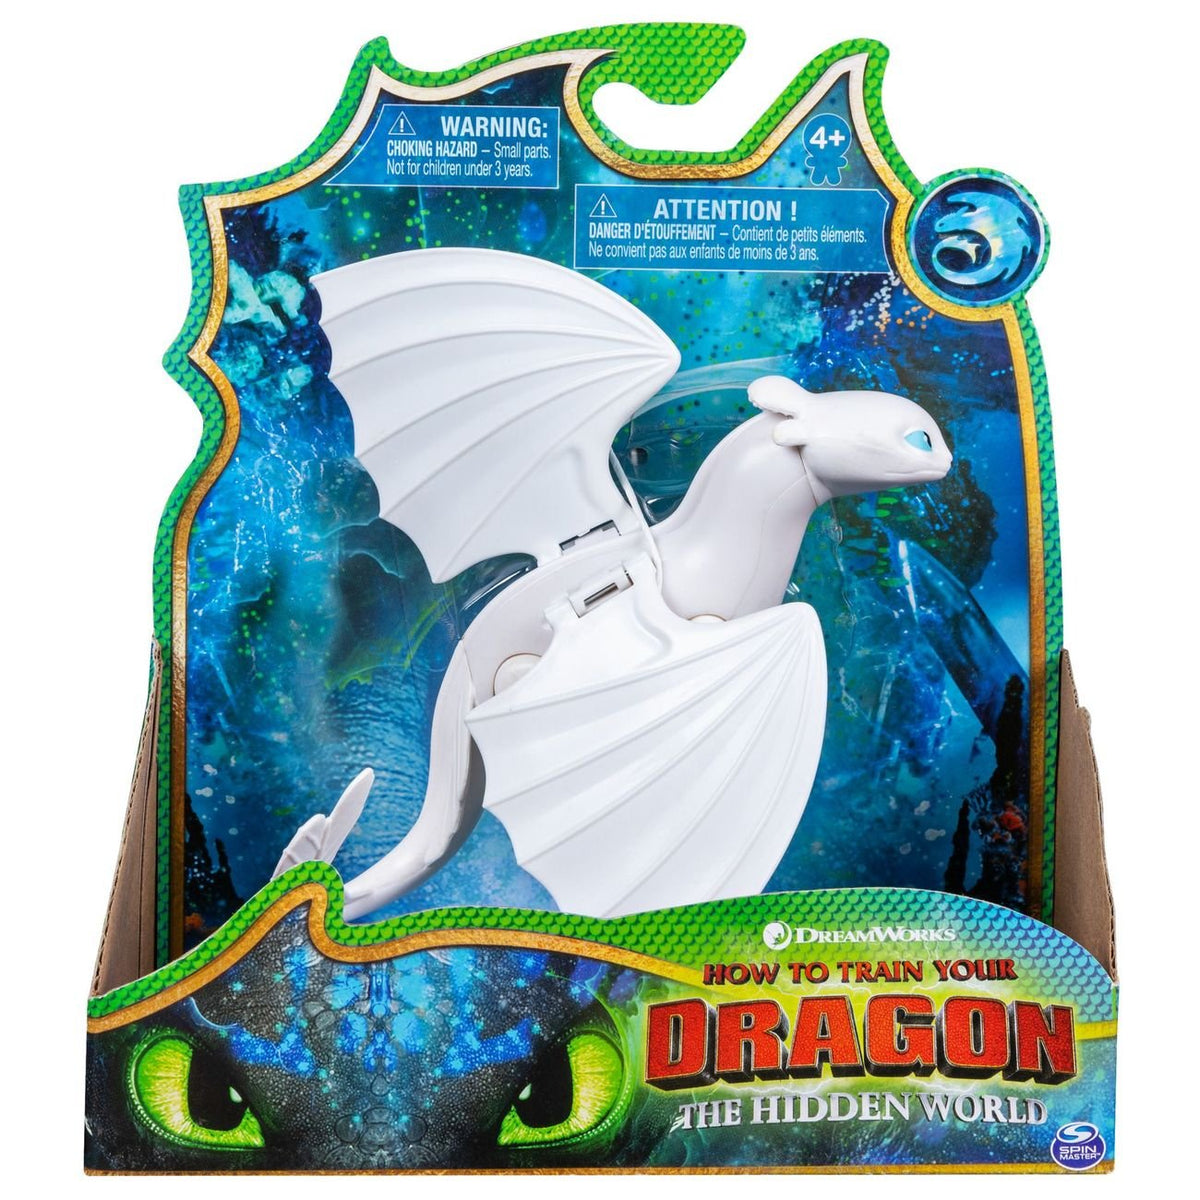 HOW TO TRAIN YOUR DRAGON THE HIDDEN WORLD BASIC ASSORTMENT LIGHTFURY